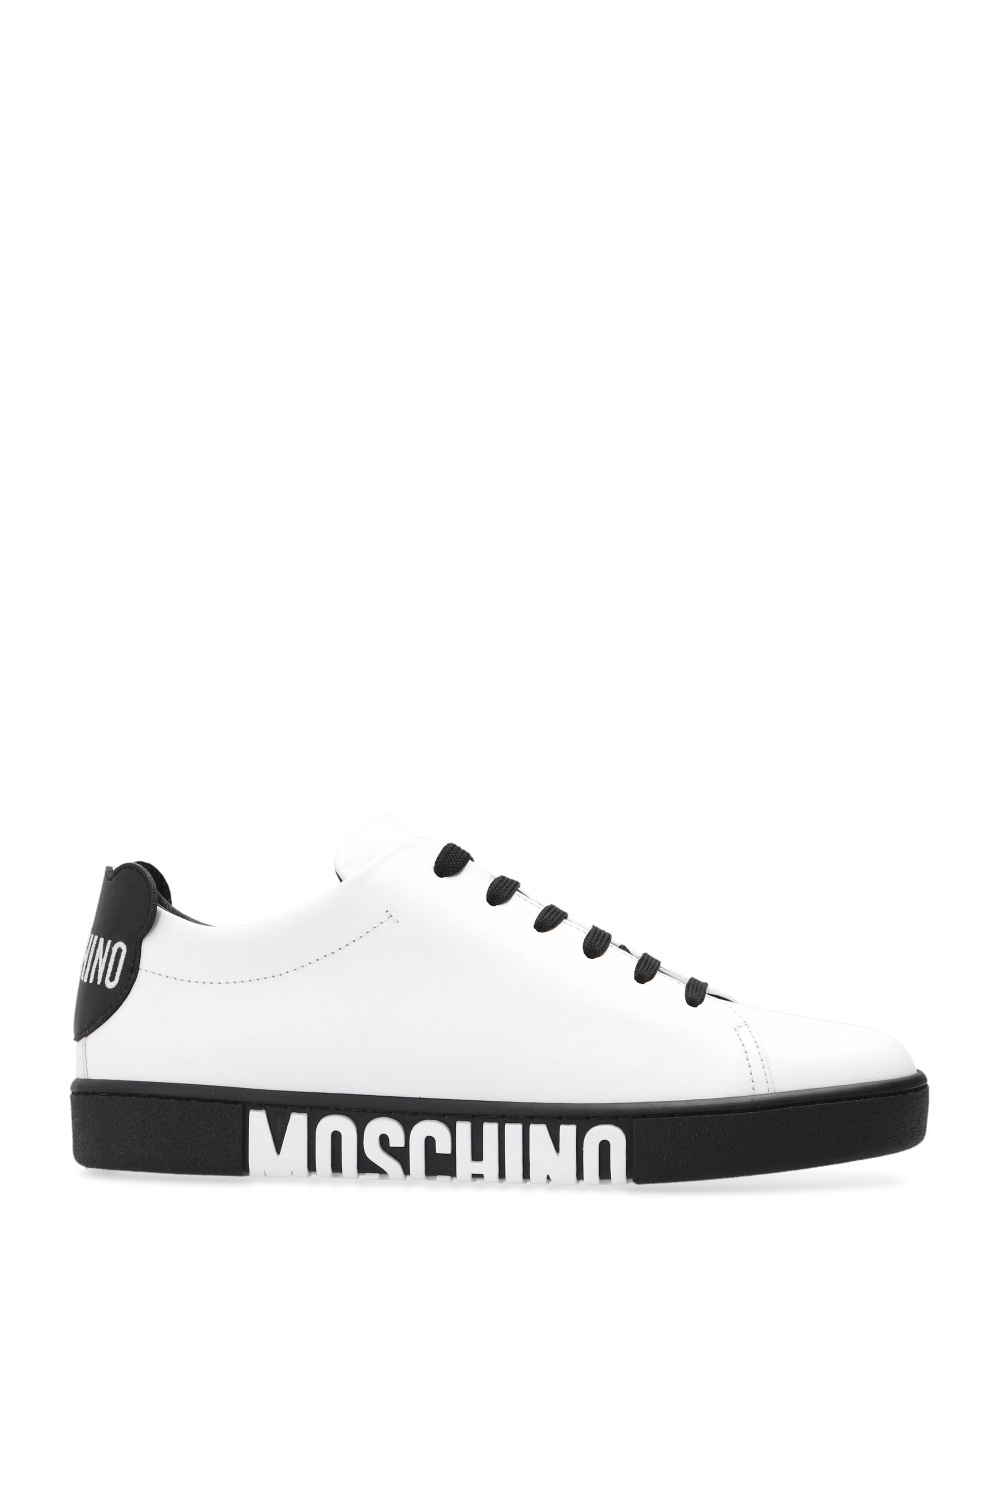 Moschino Sneakers with logo